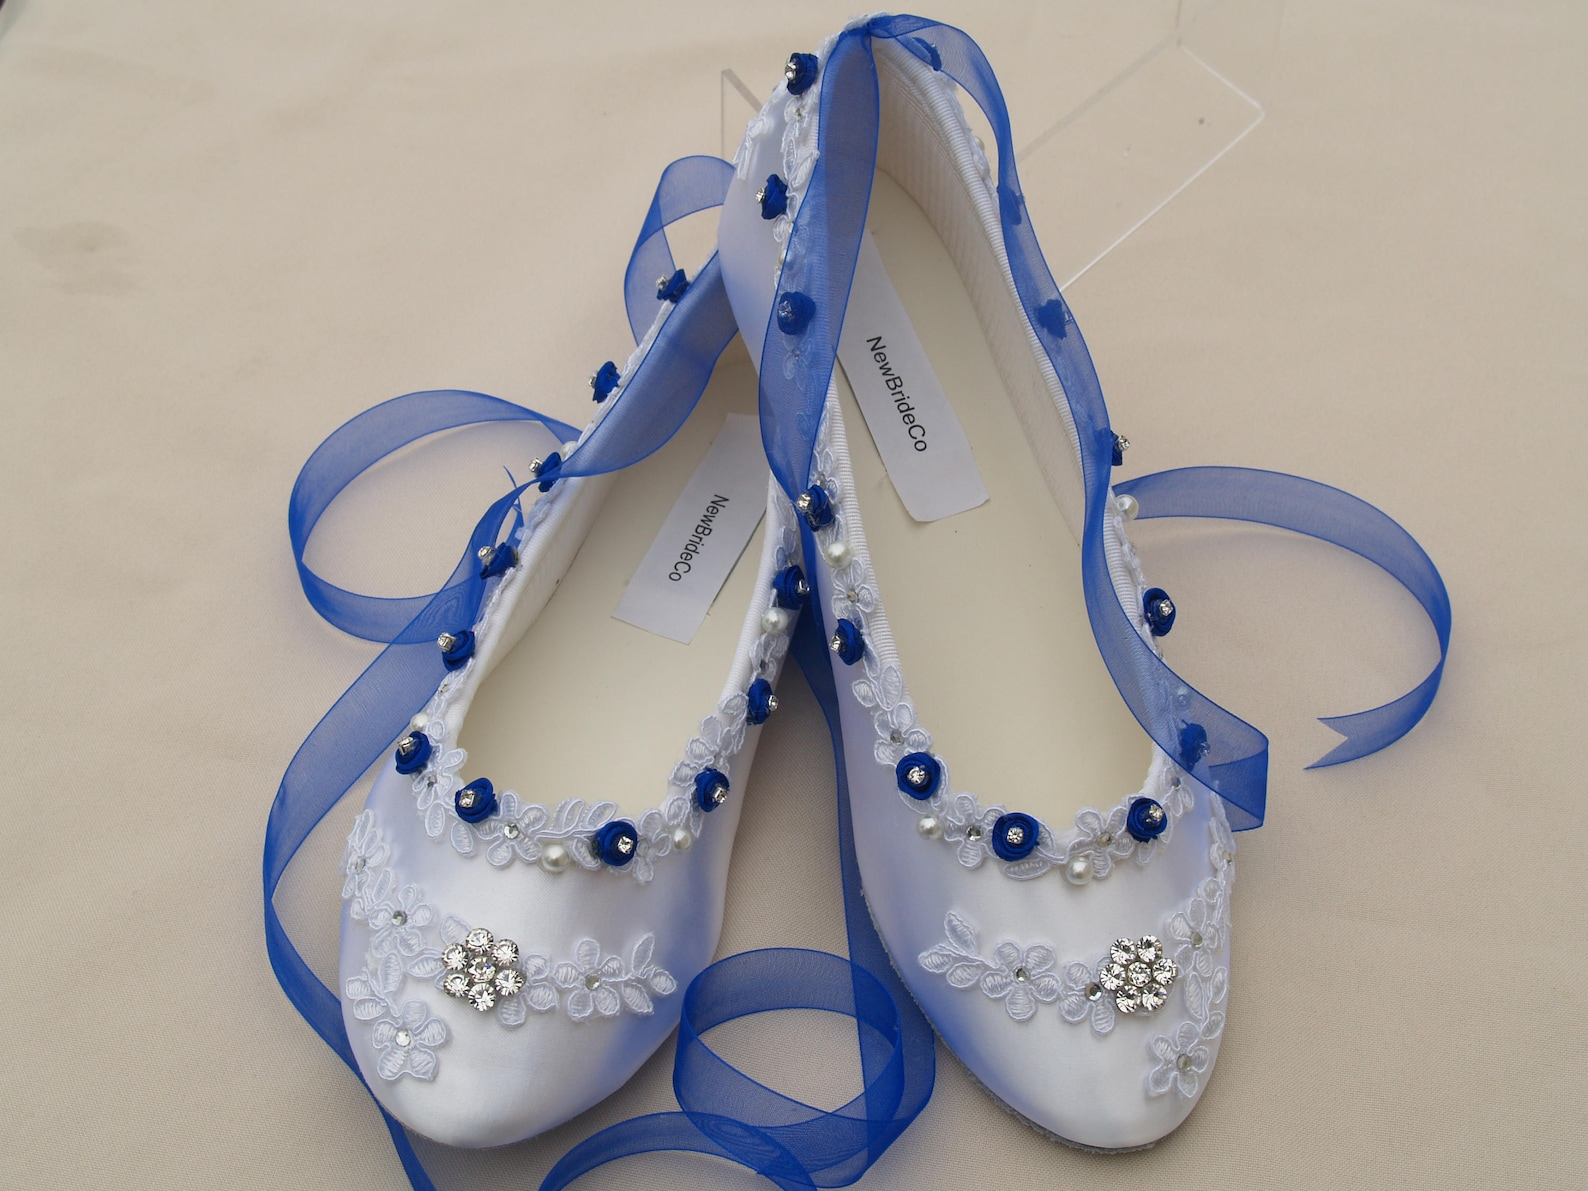 wedding royal blue flats white shoes venice lace edging with flowers crystals, romantic ballet style slipper, lace with pearls a